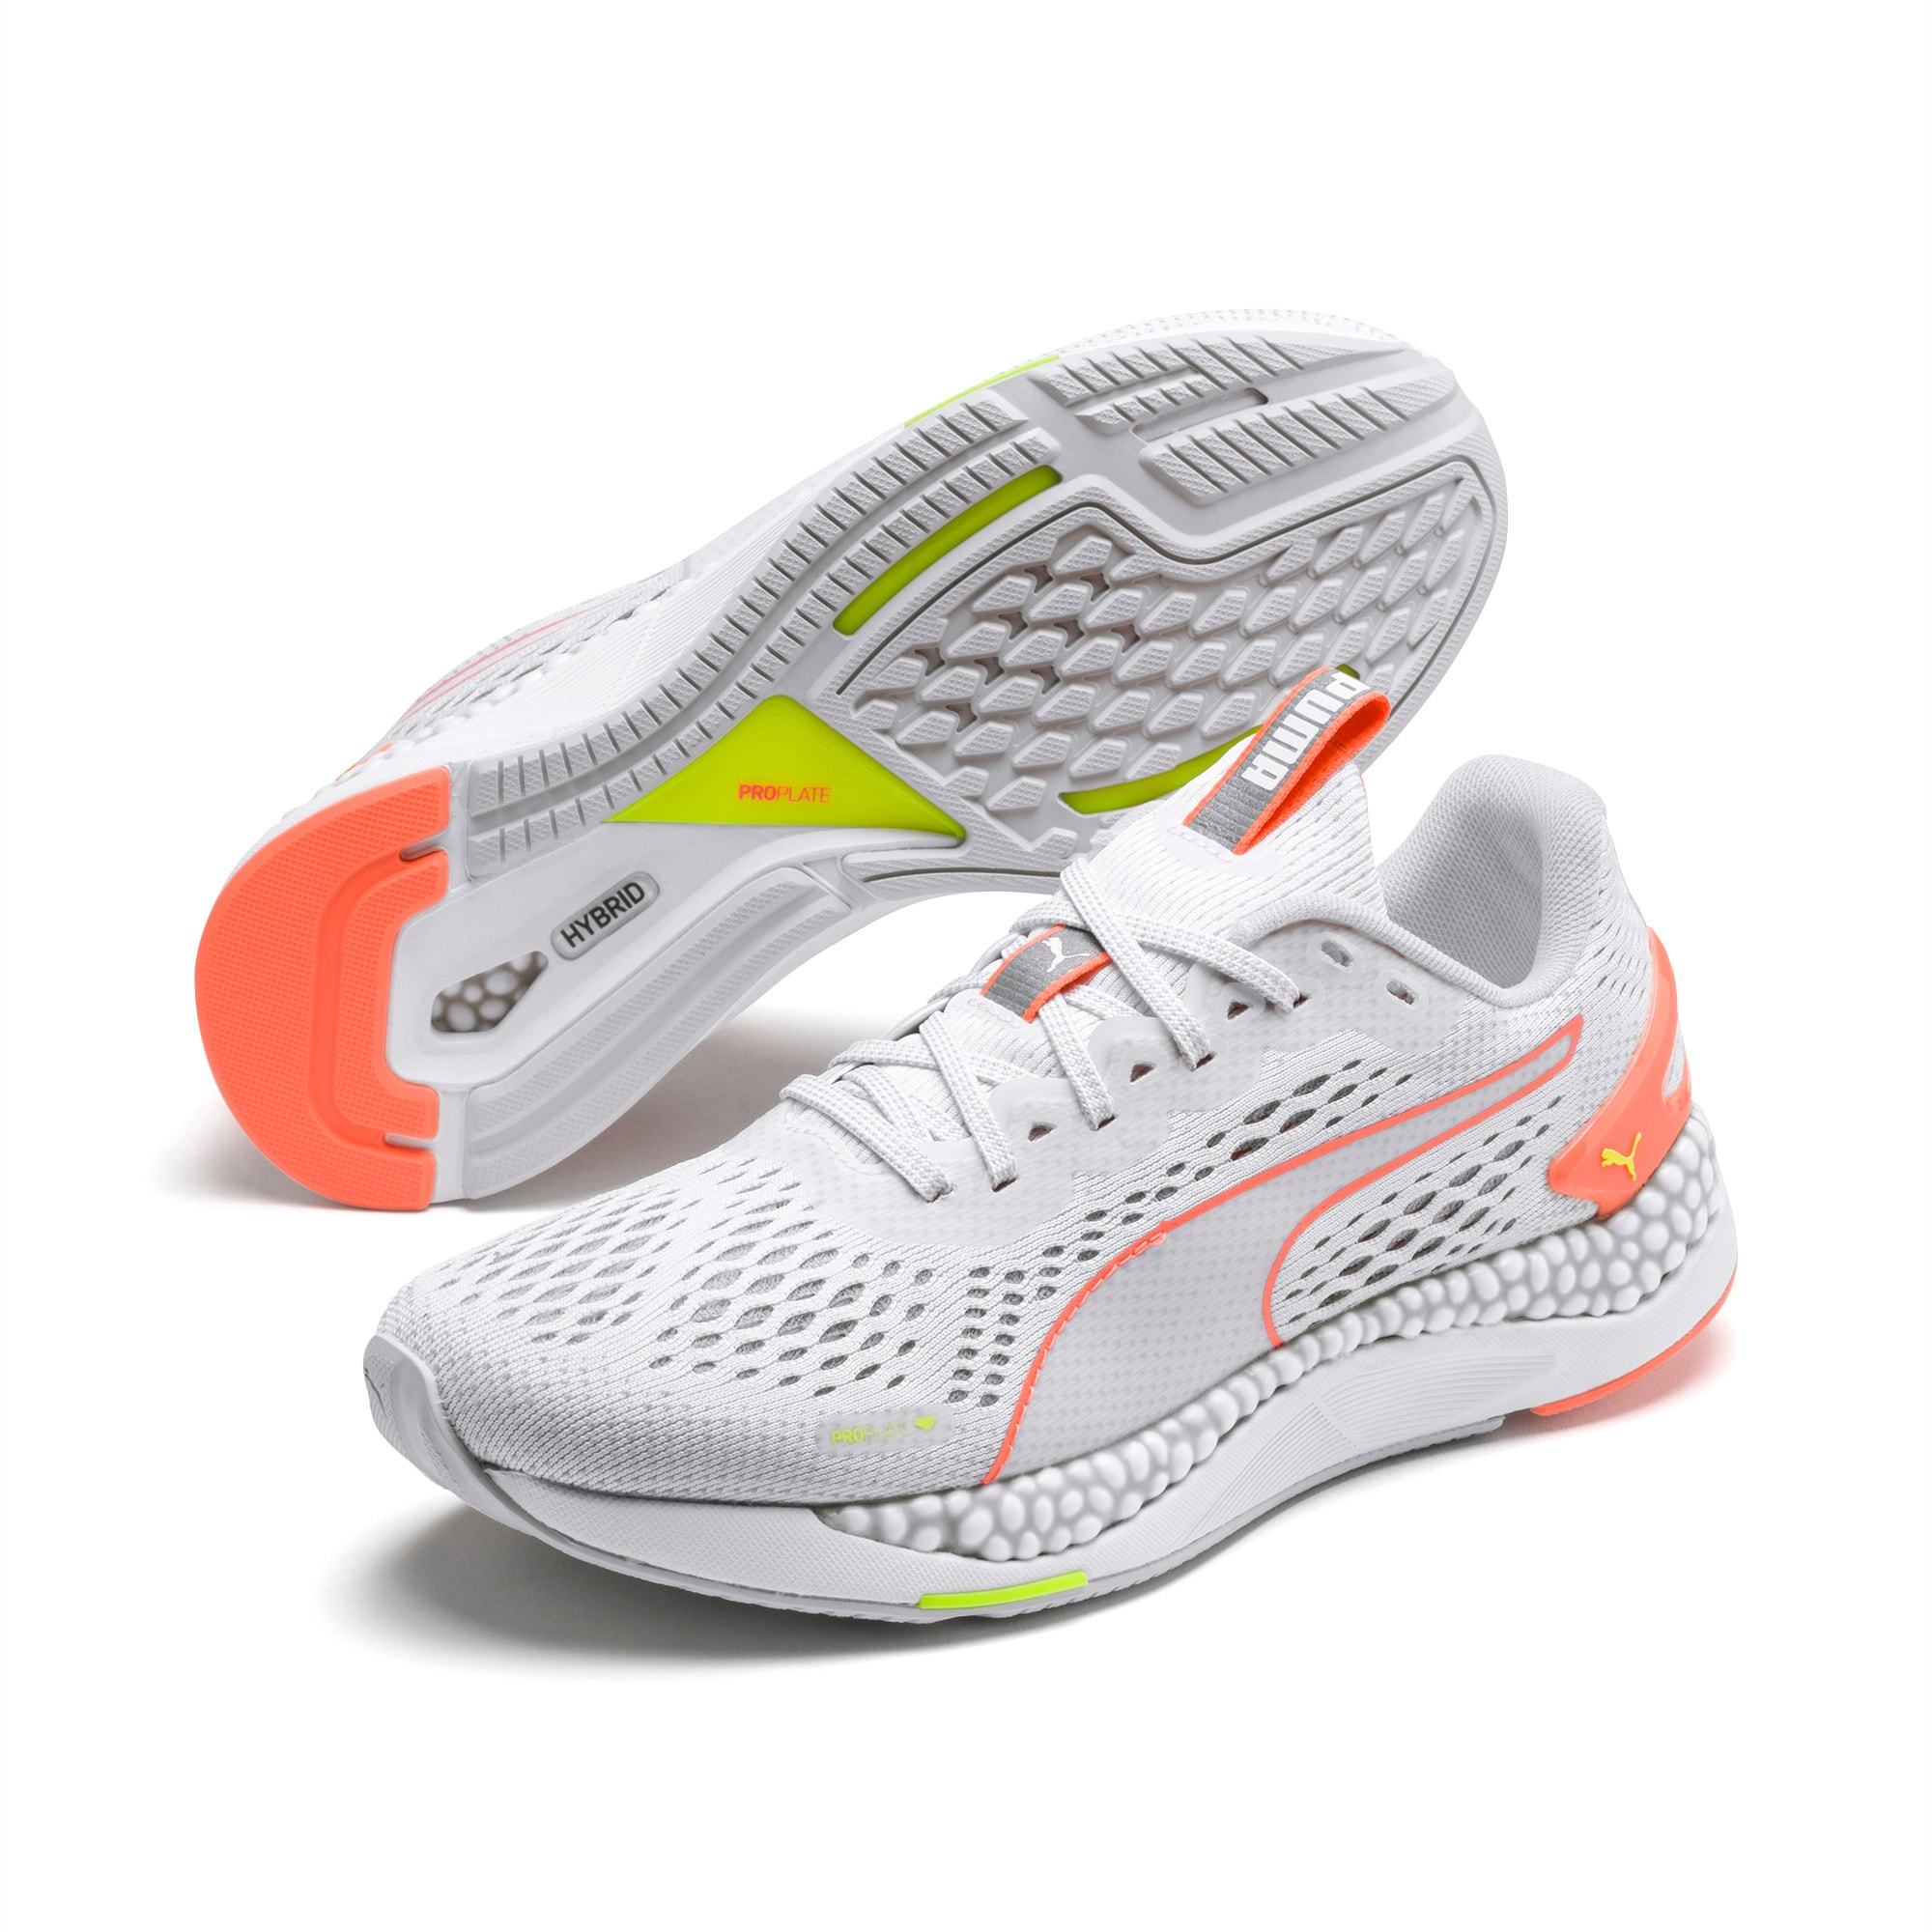 SPEED 600 2 Wn s Puma White-Fizzy Orange SP-Footwear-Womens Puma